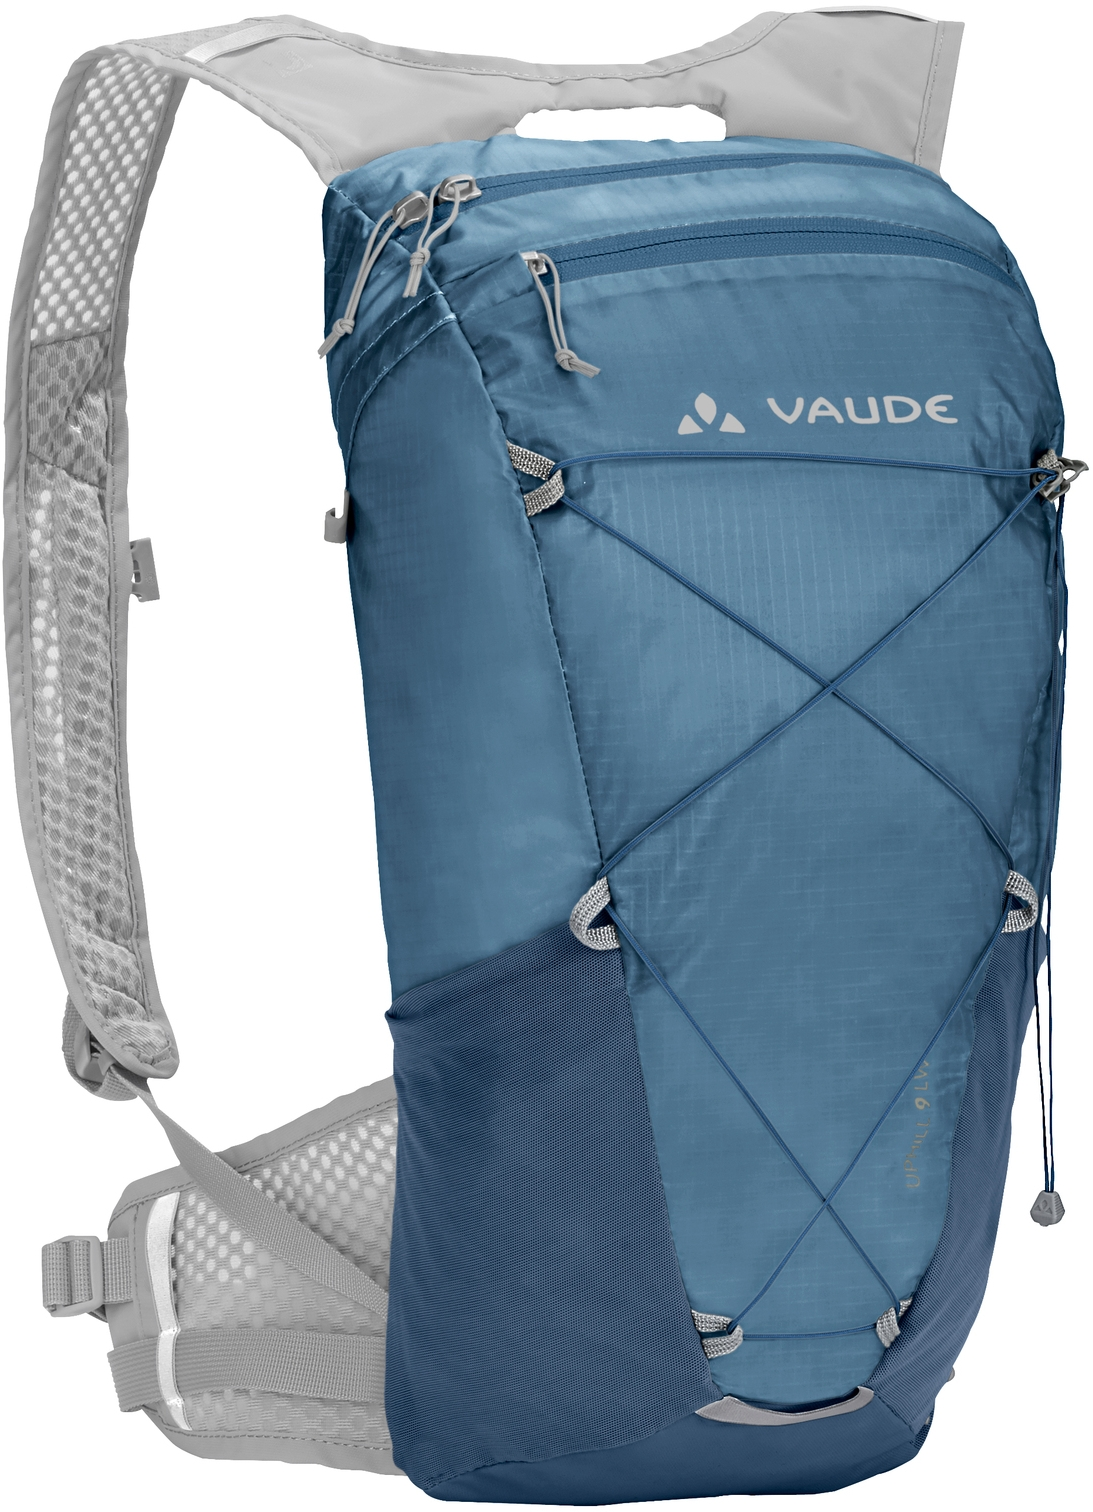 Vaude Uphill 9 LW - washed blue uni